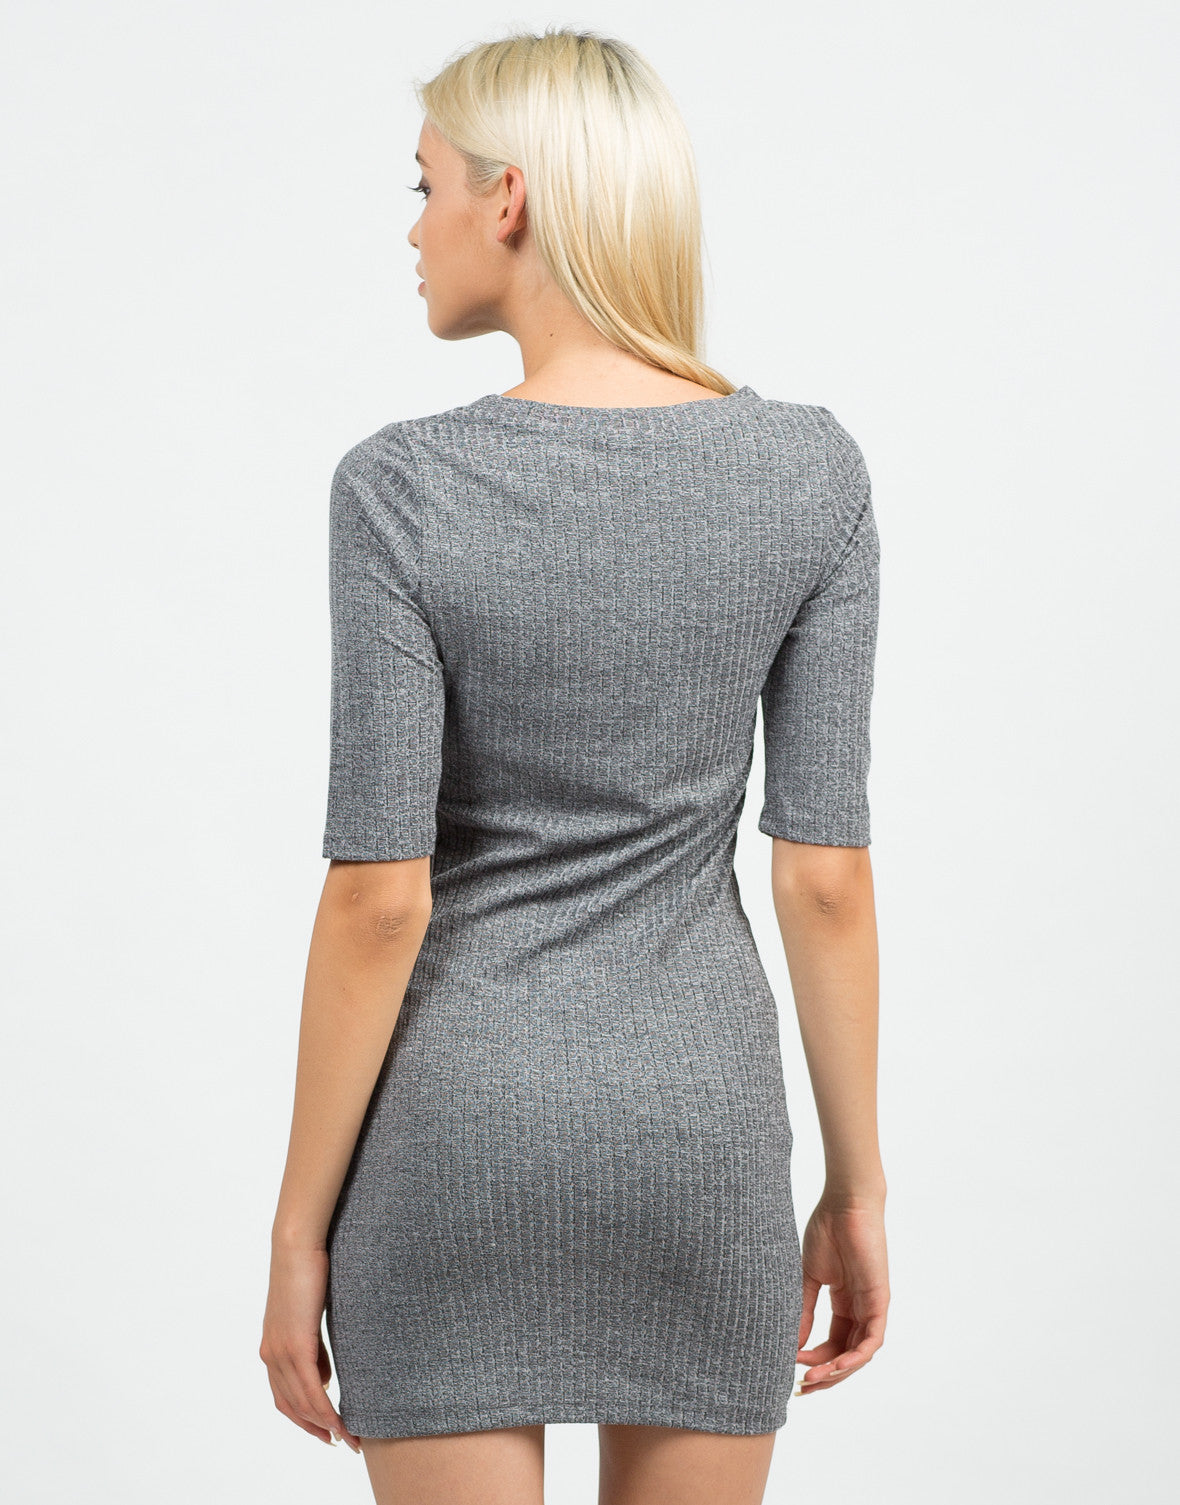 Back View of Ribbed 3/4 Tunic Top